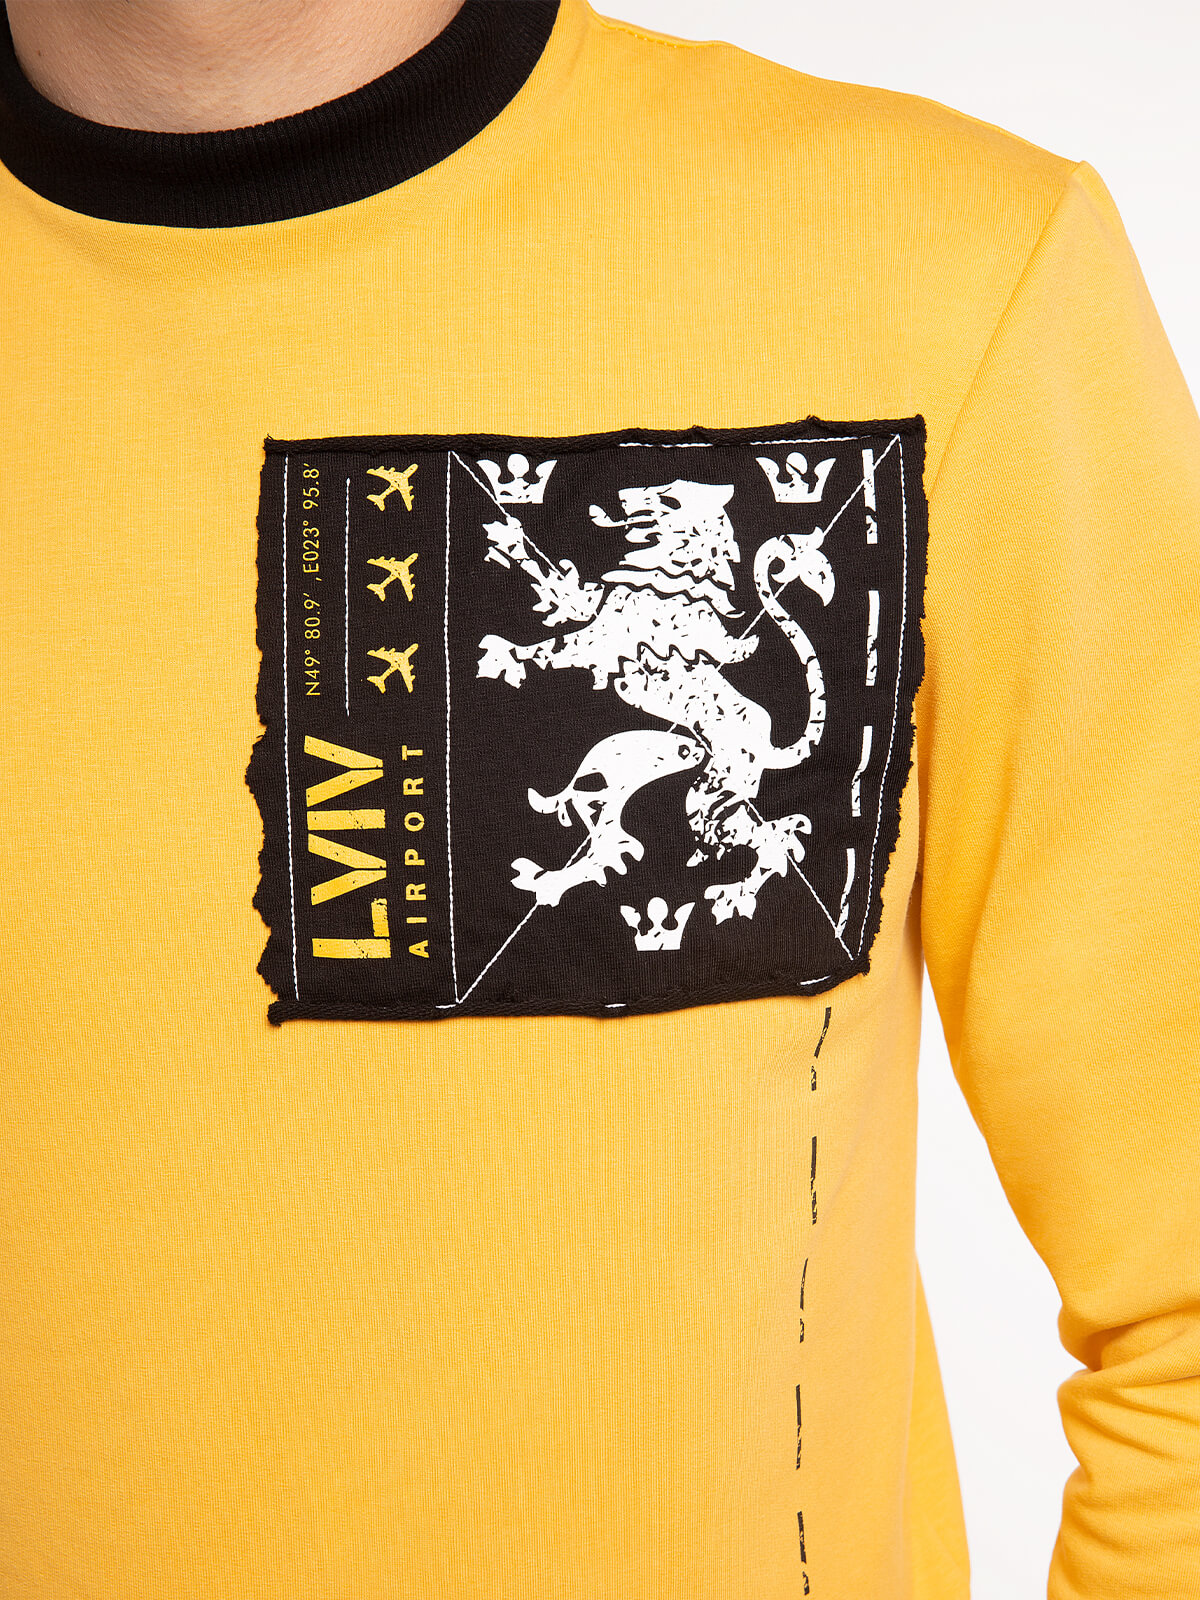 Men's Long Sleeves Have A Nice Flight. Color yellow.  Size worn by the model: M.